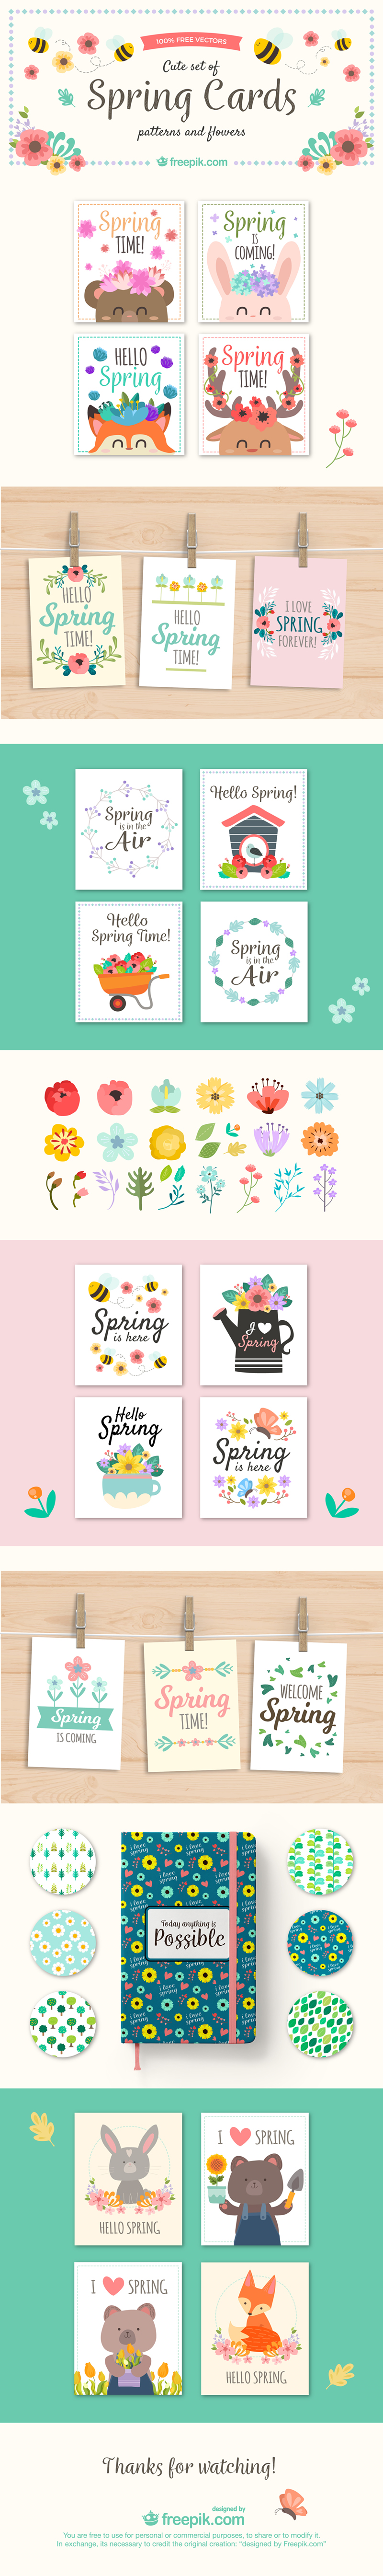 Spring cards designed in bvector formats